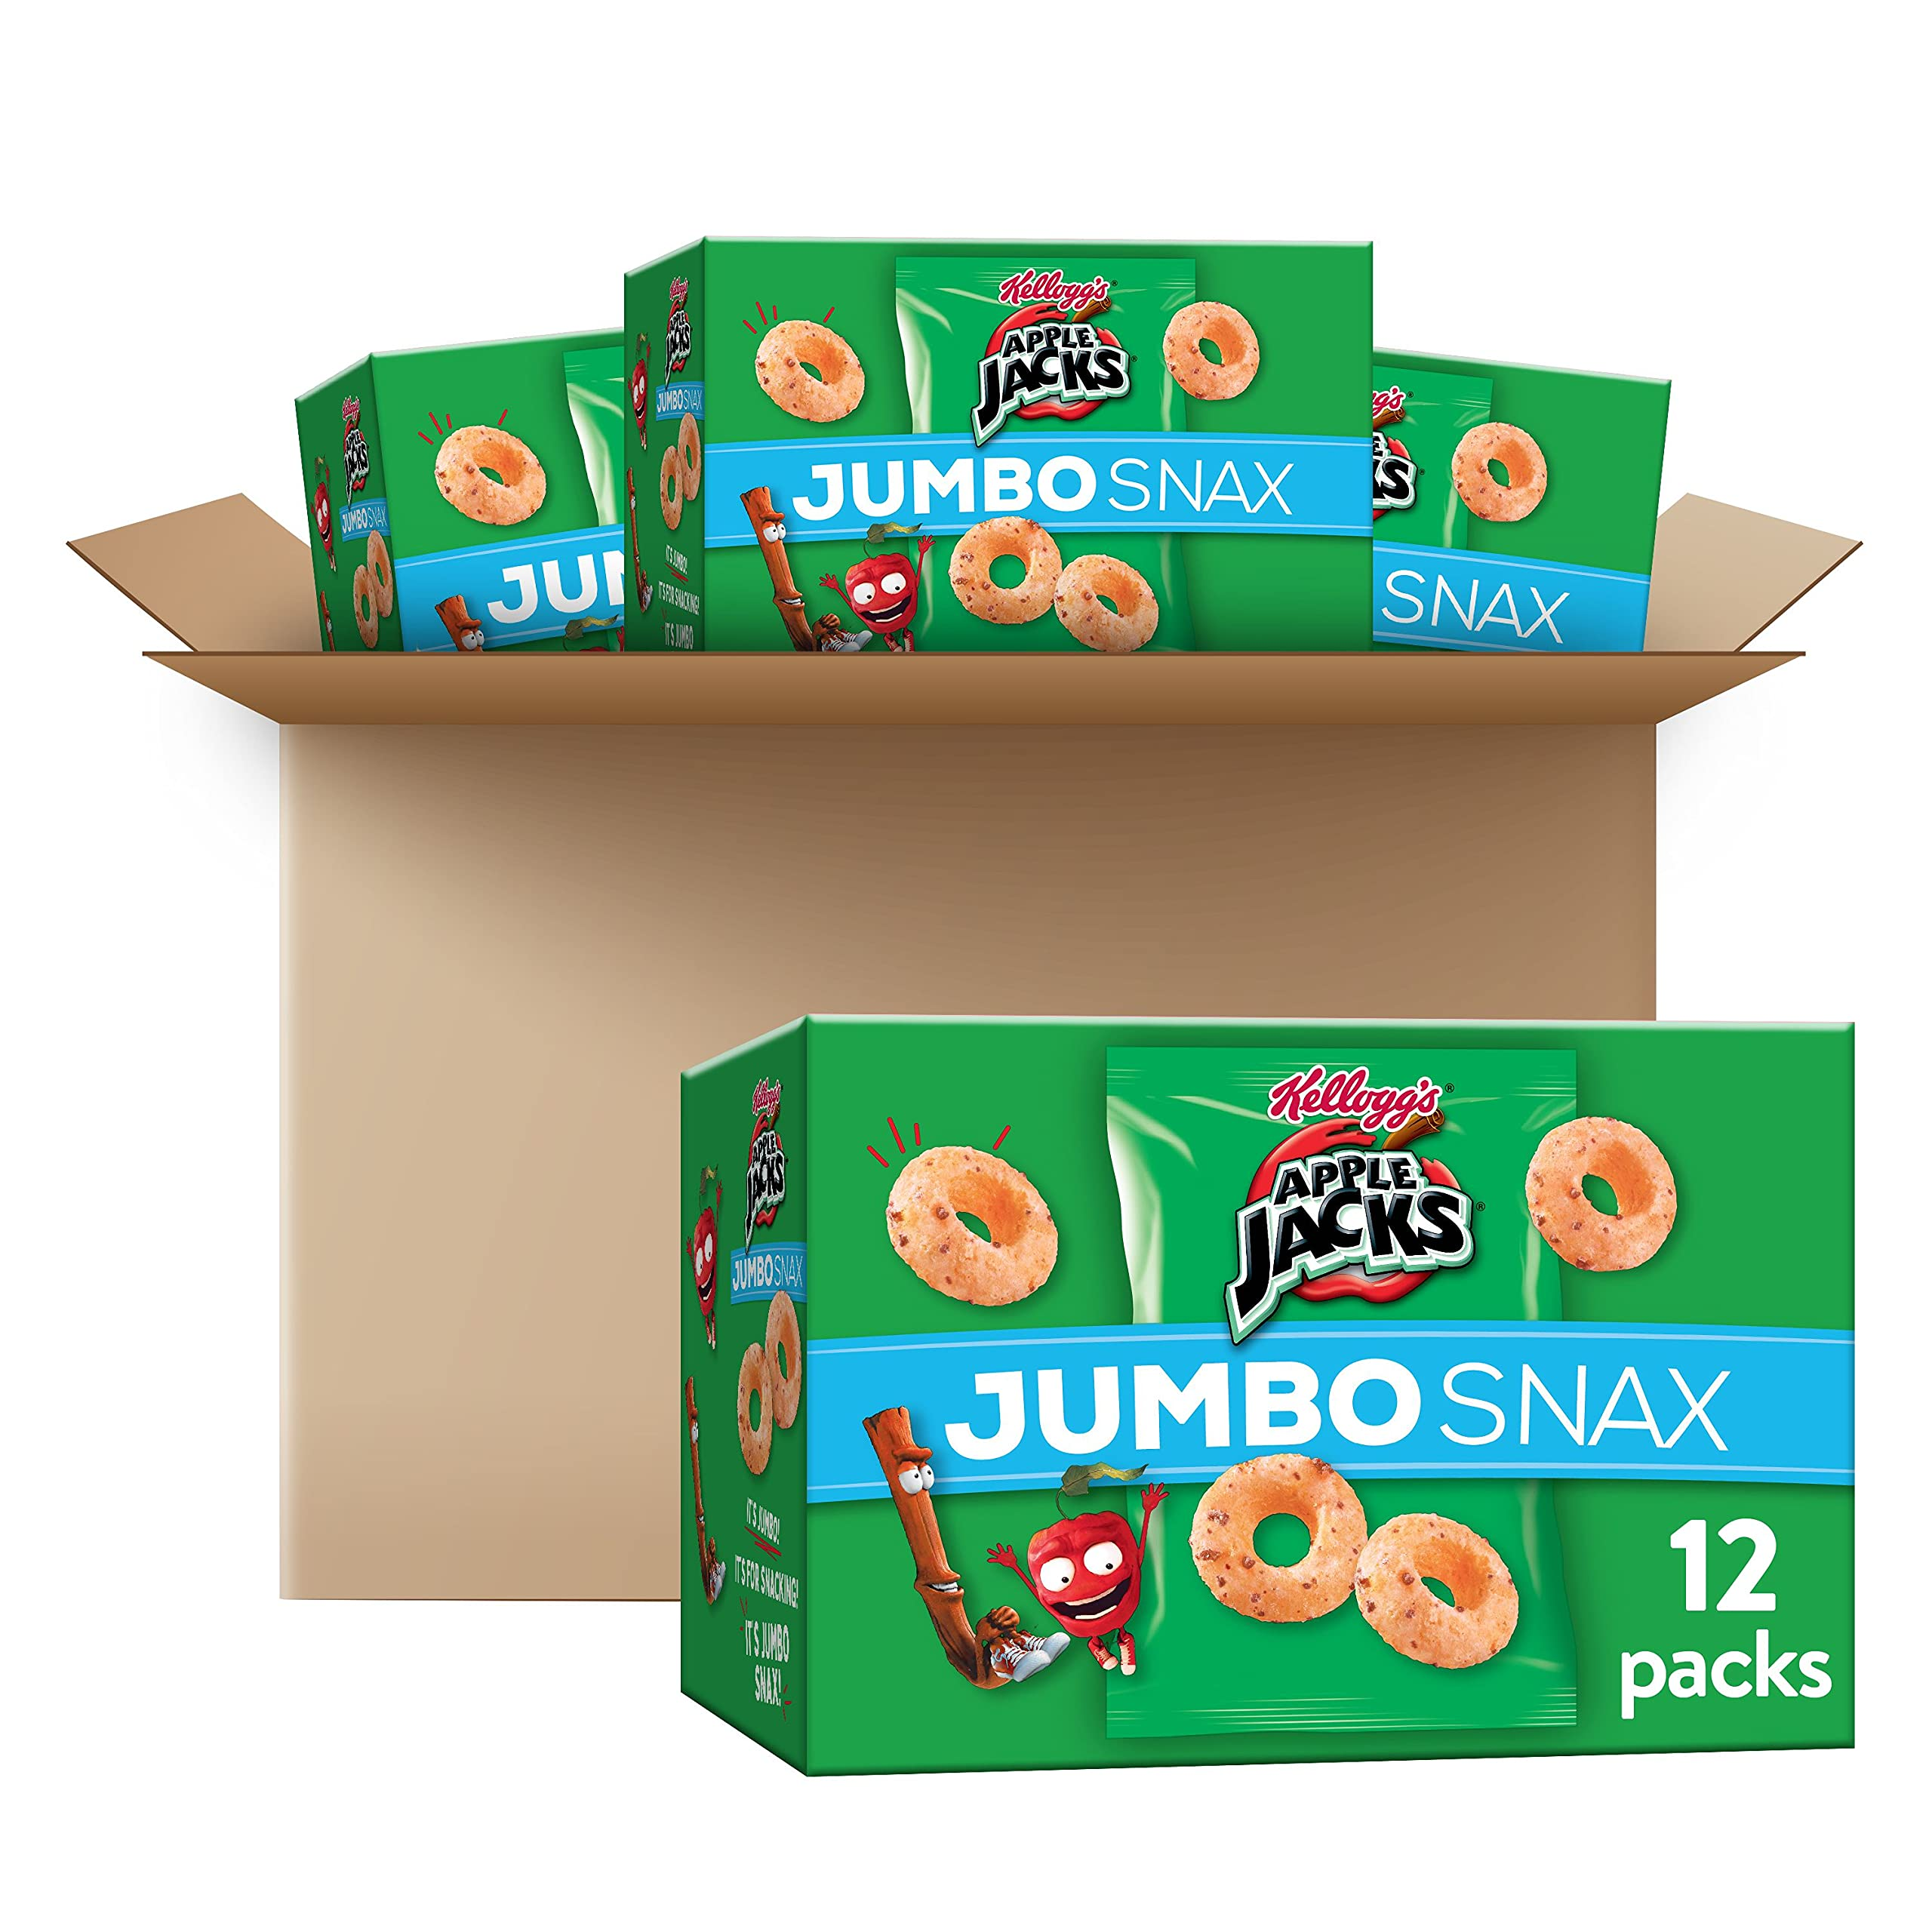 Kellogg's Apple Jacks Jumbo Snax, Cereal Snacks, On the Go, 12 - .45 oz bags (Pack of 4, 48 count total)